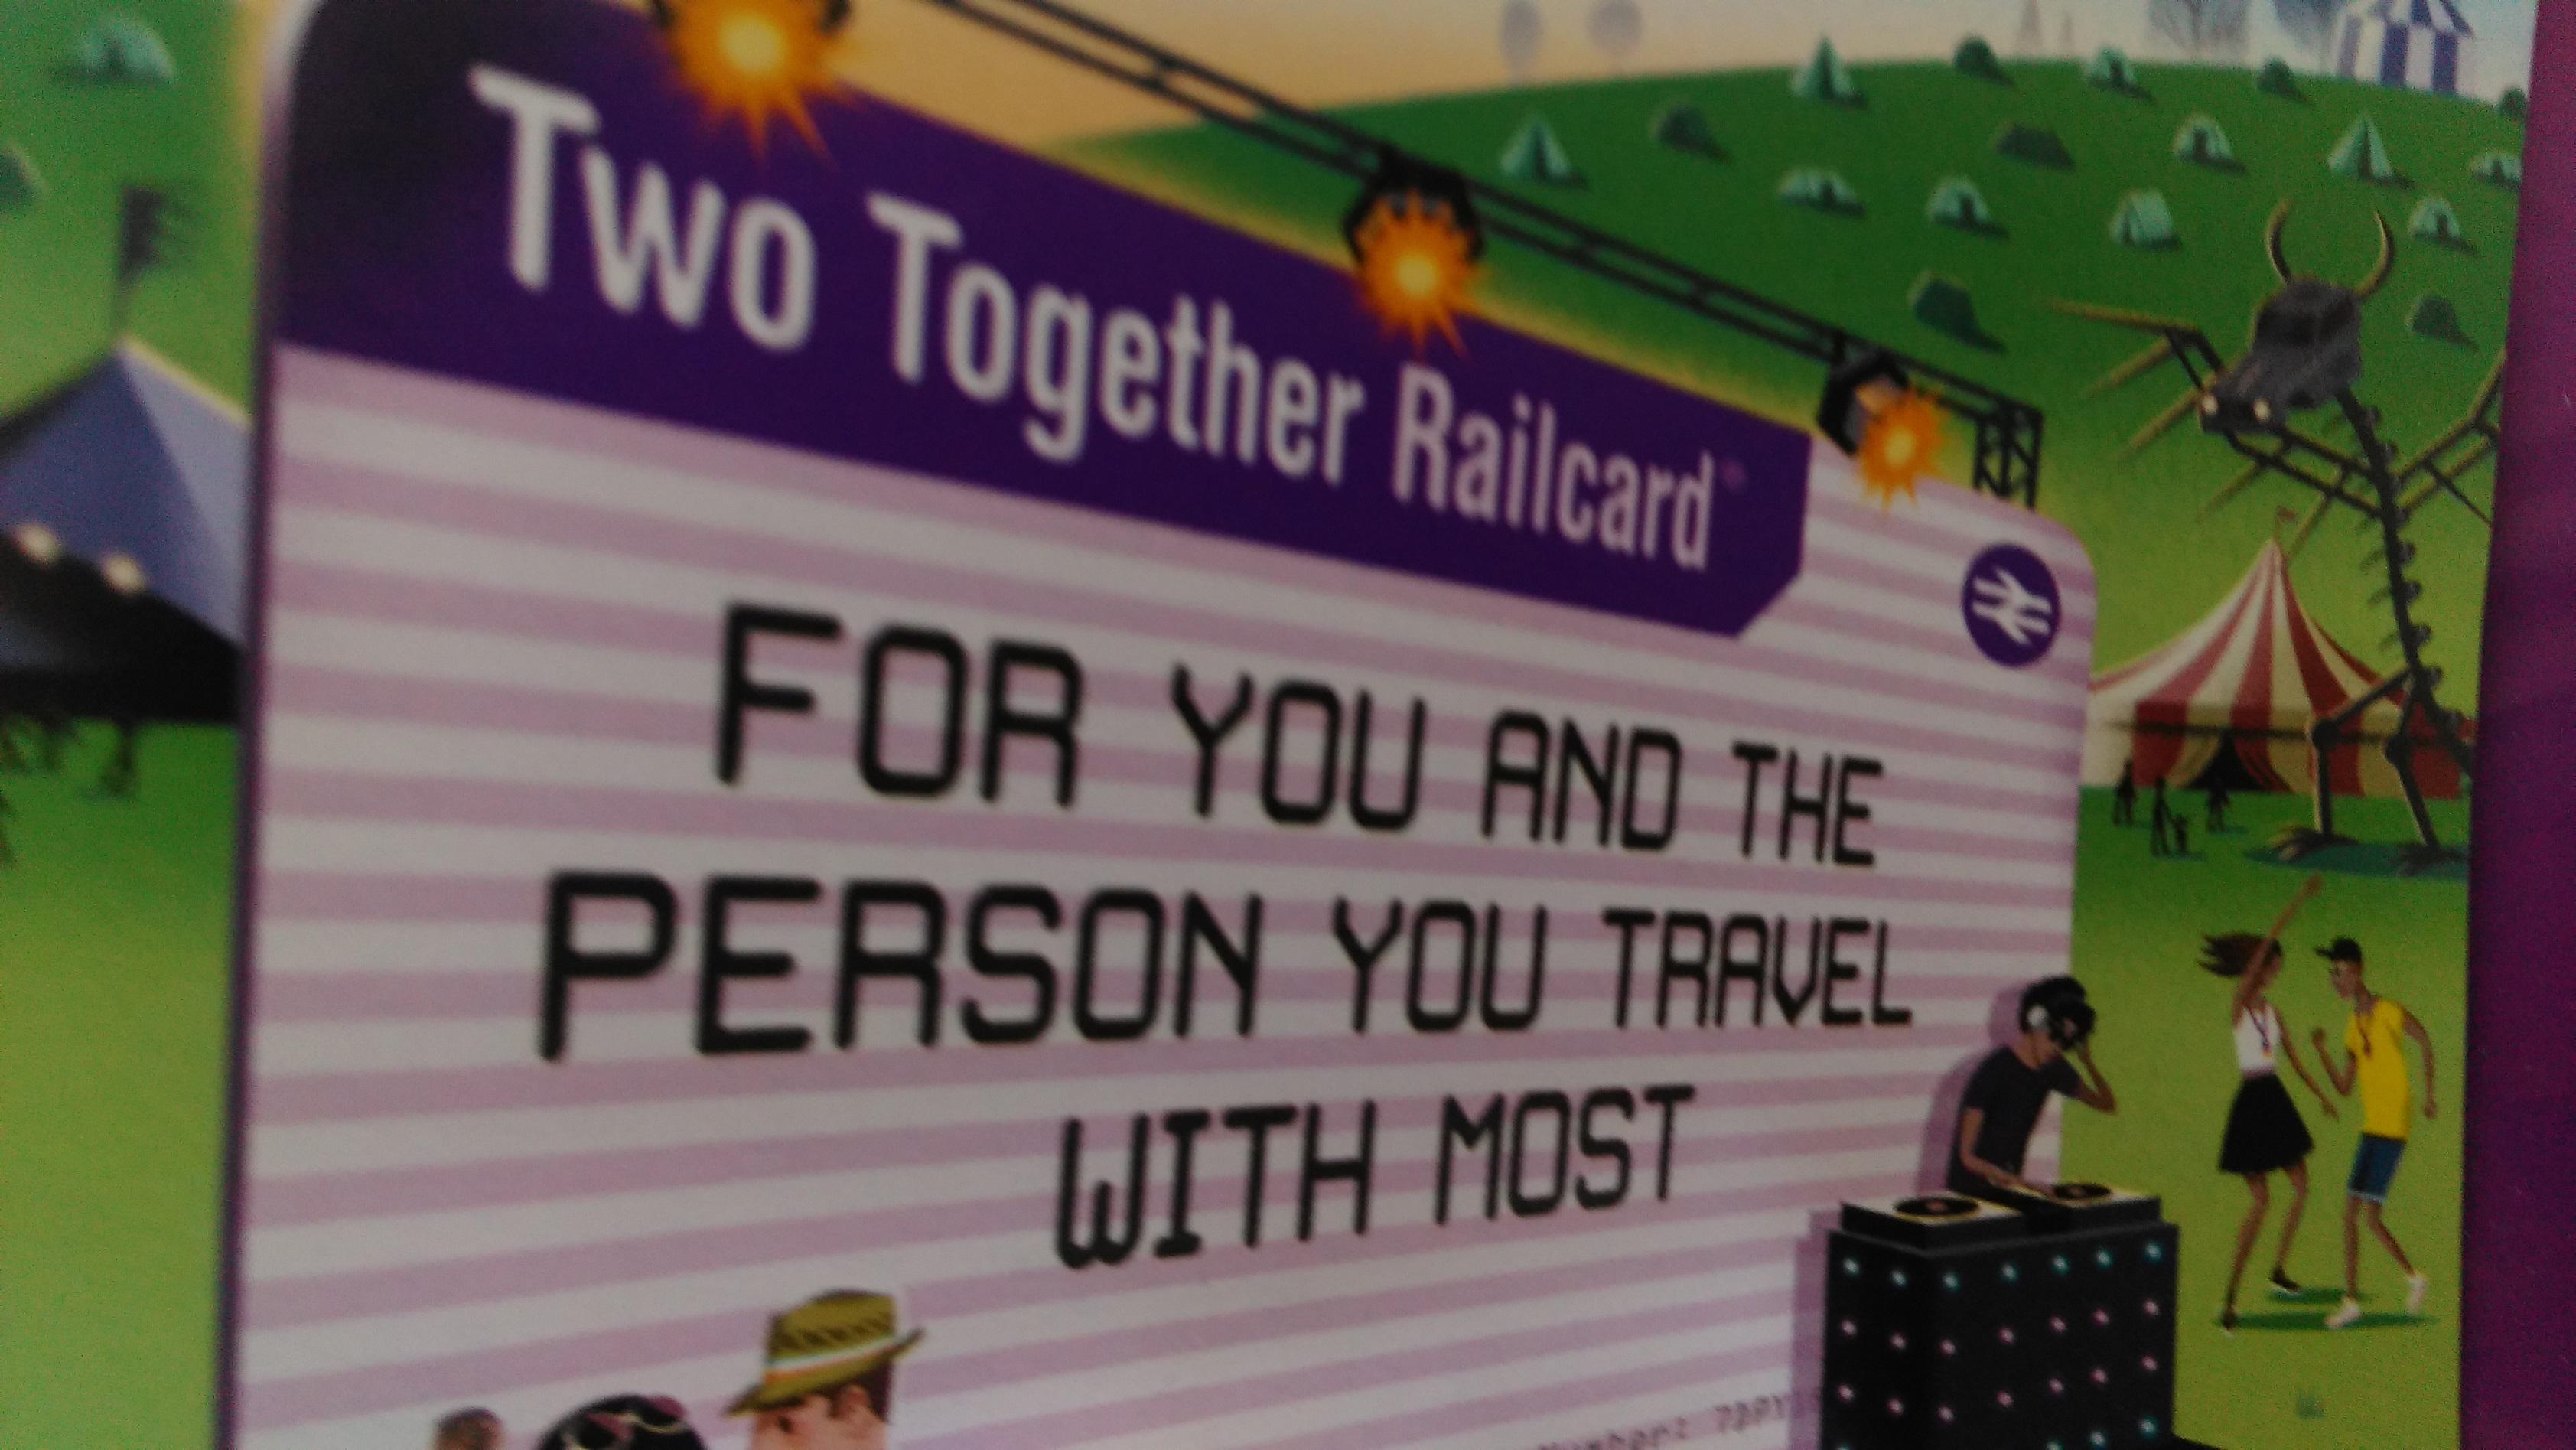 Two Together Railcard Rail Tour Guide